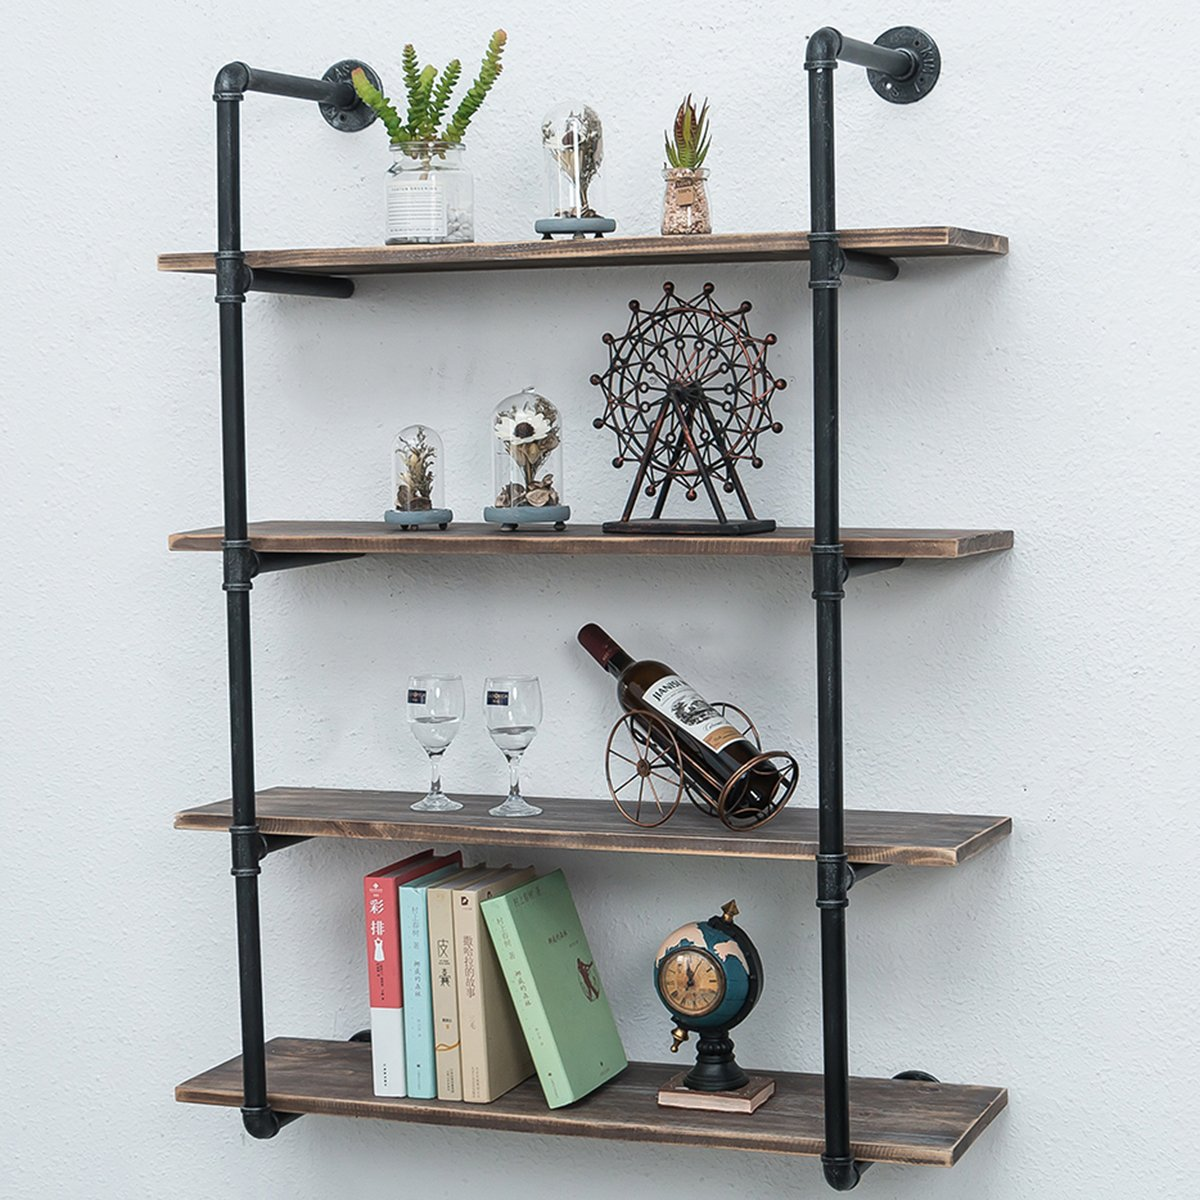 industrial pipe shelves with wood tiers rustic wall floating mount shelf metal hung bracket bookshelf diy storage shelving wooden ikea bathroom and organizers glass entertainment